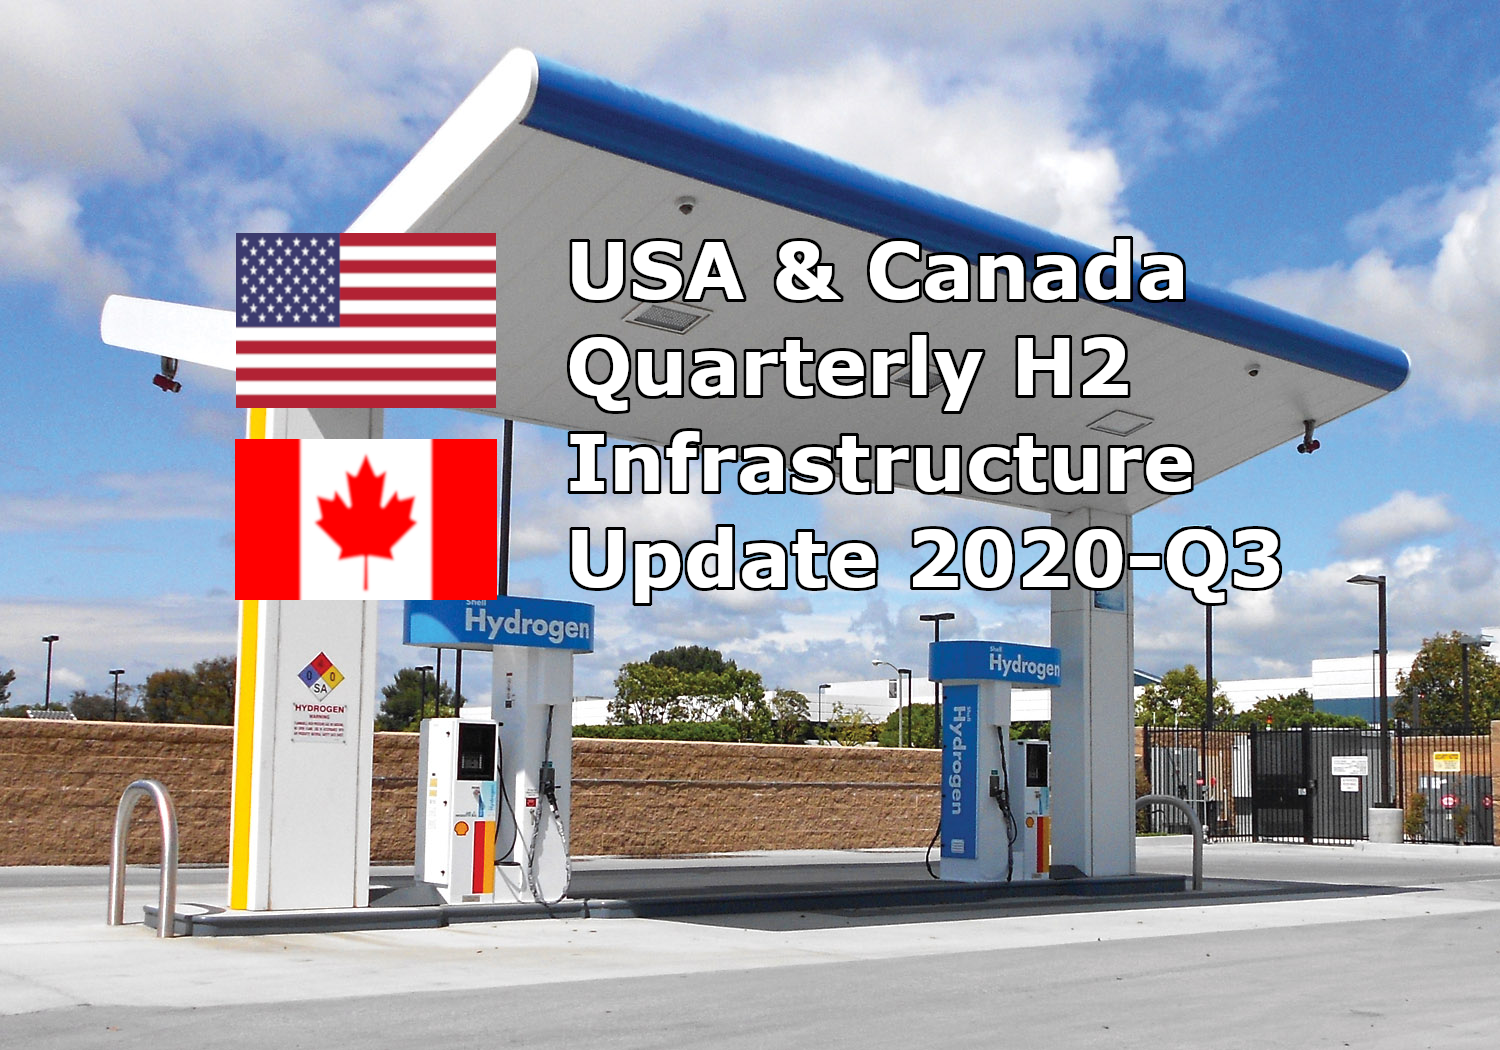 USA & CANADA QUARTERLY H2 INFRASTRUCTURE UPDATE 2020-Q3